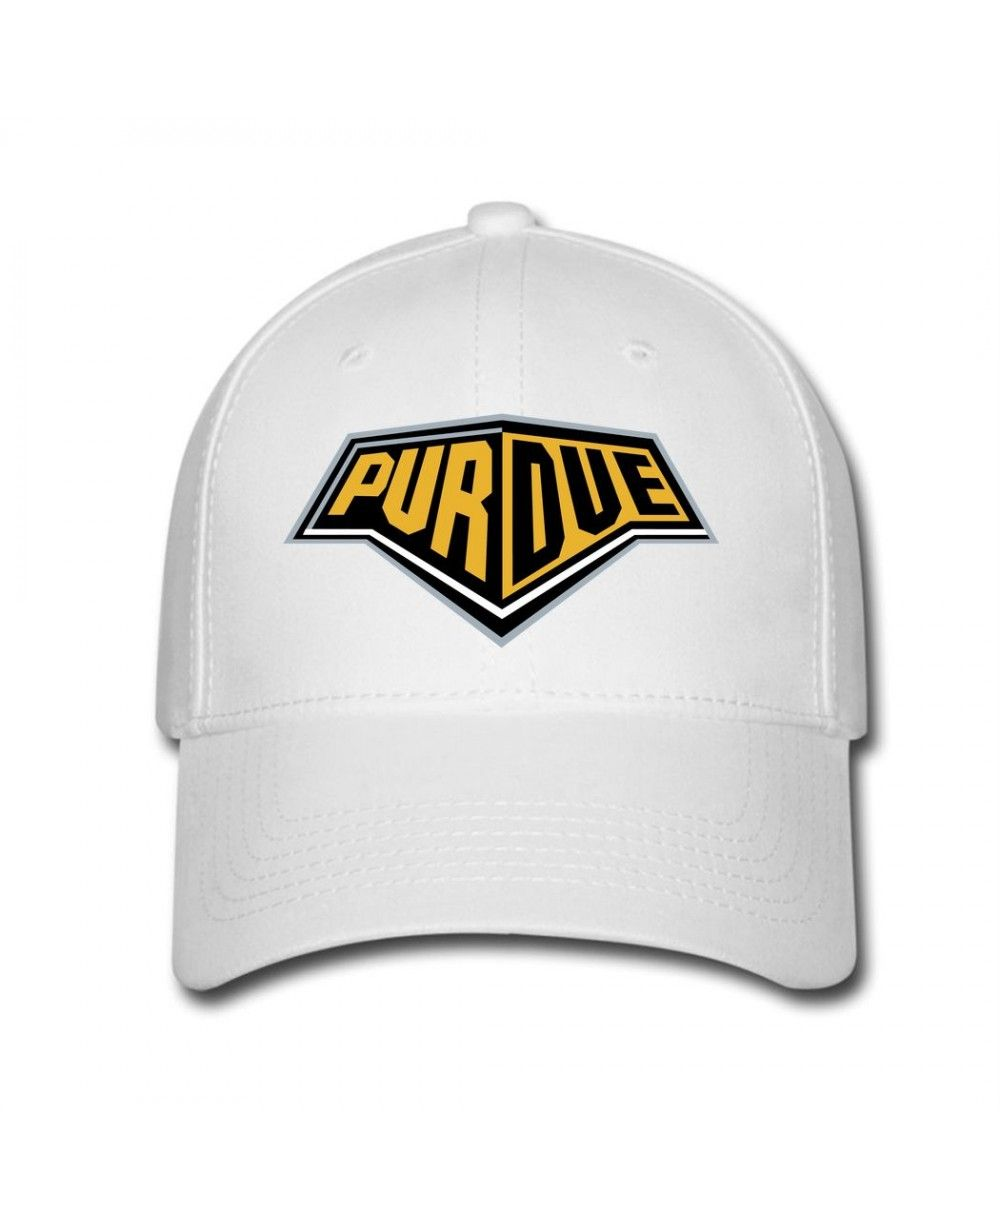 save off c673f 9f54d get nike purdue boilermakers on field fitted hat black 87aff 4f6fb  uk  purdue unisex adjustable baseball cap f1f52 a22ed